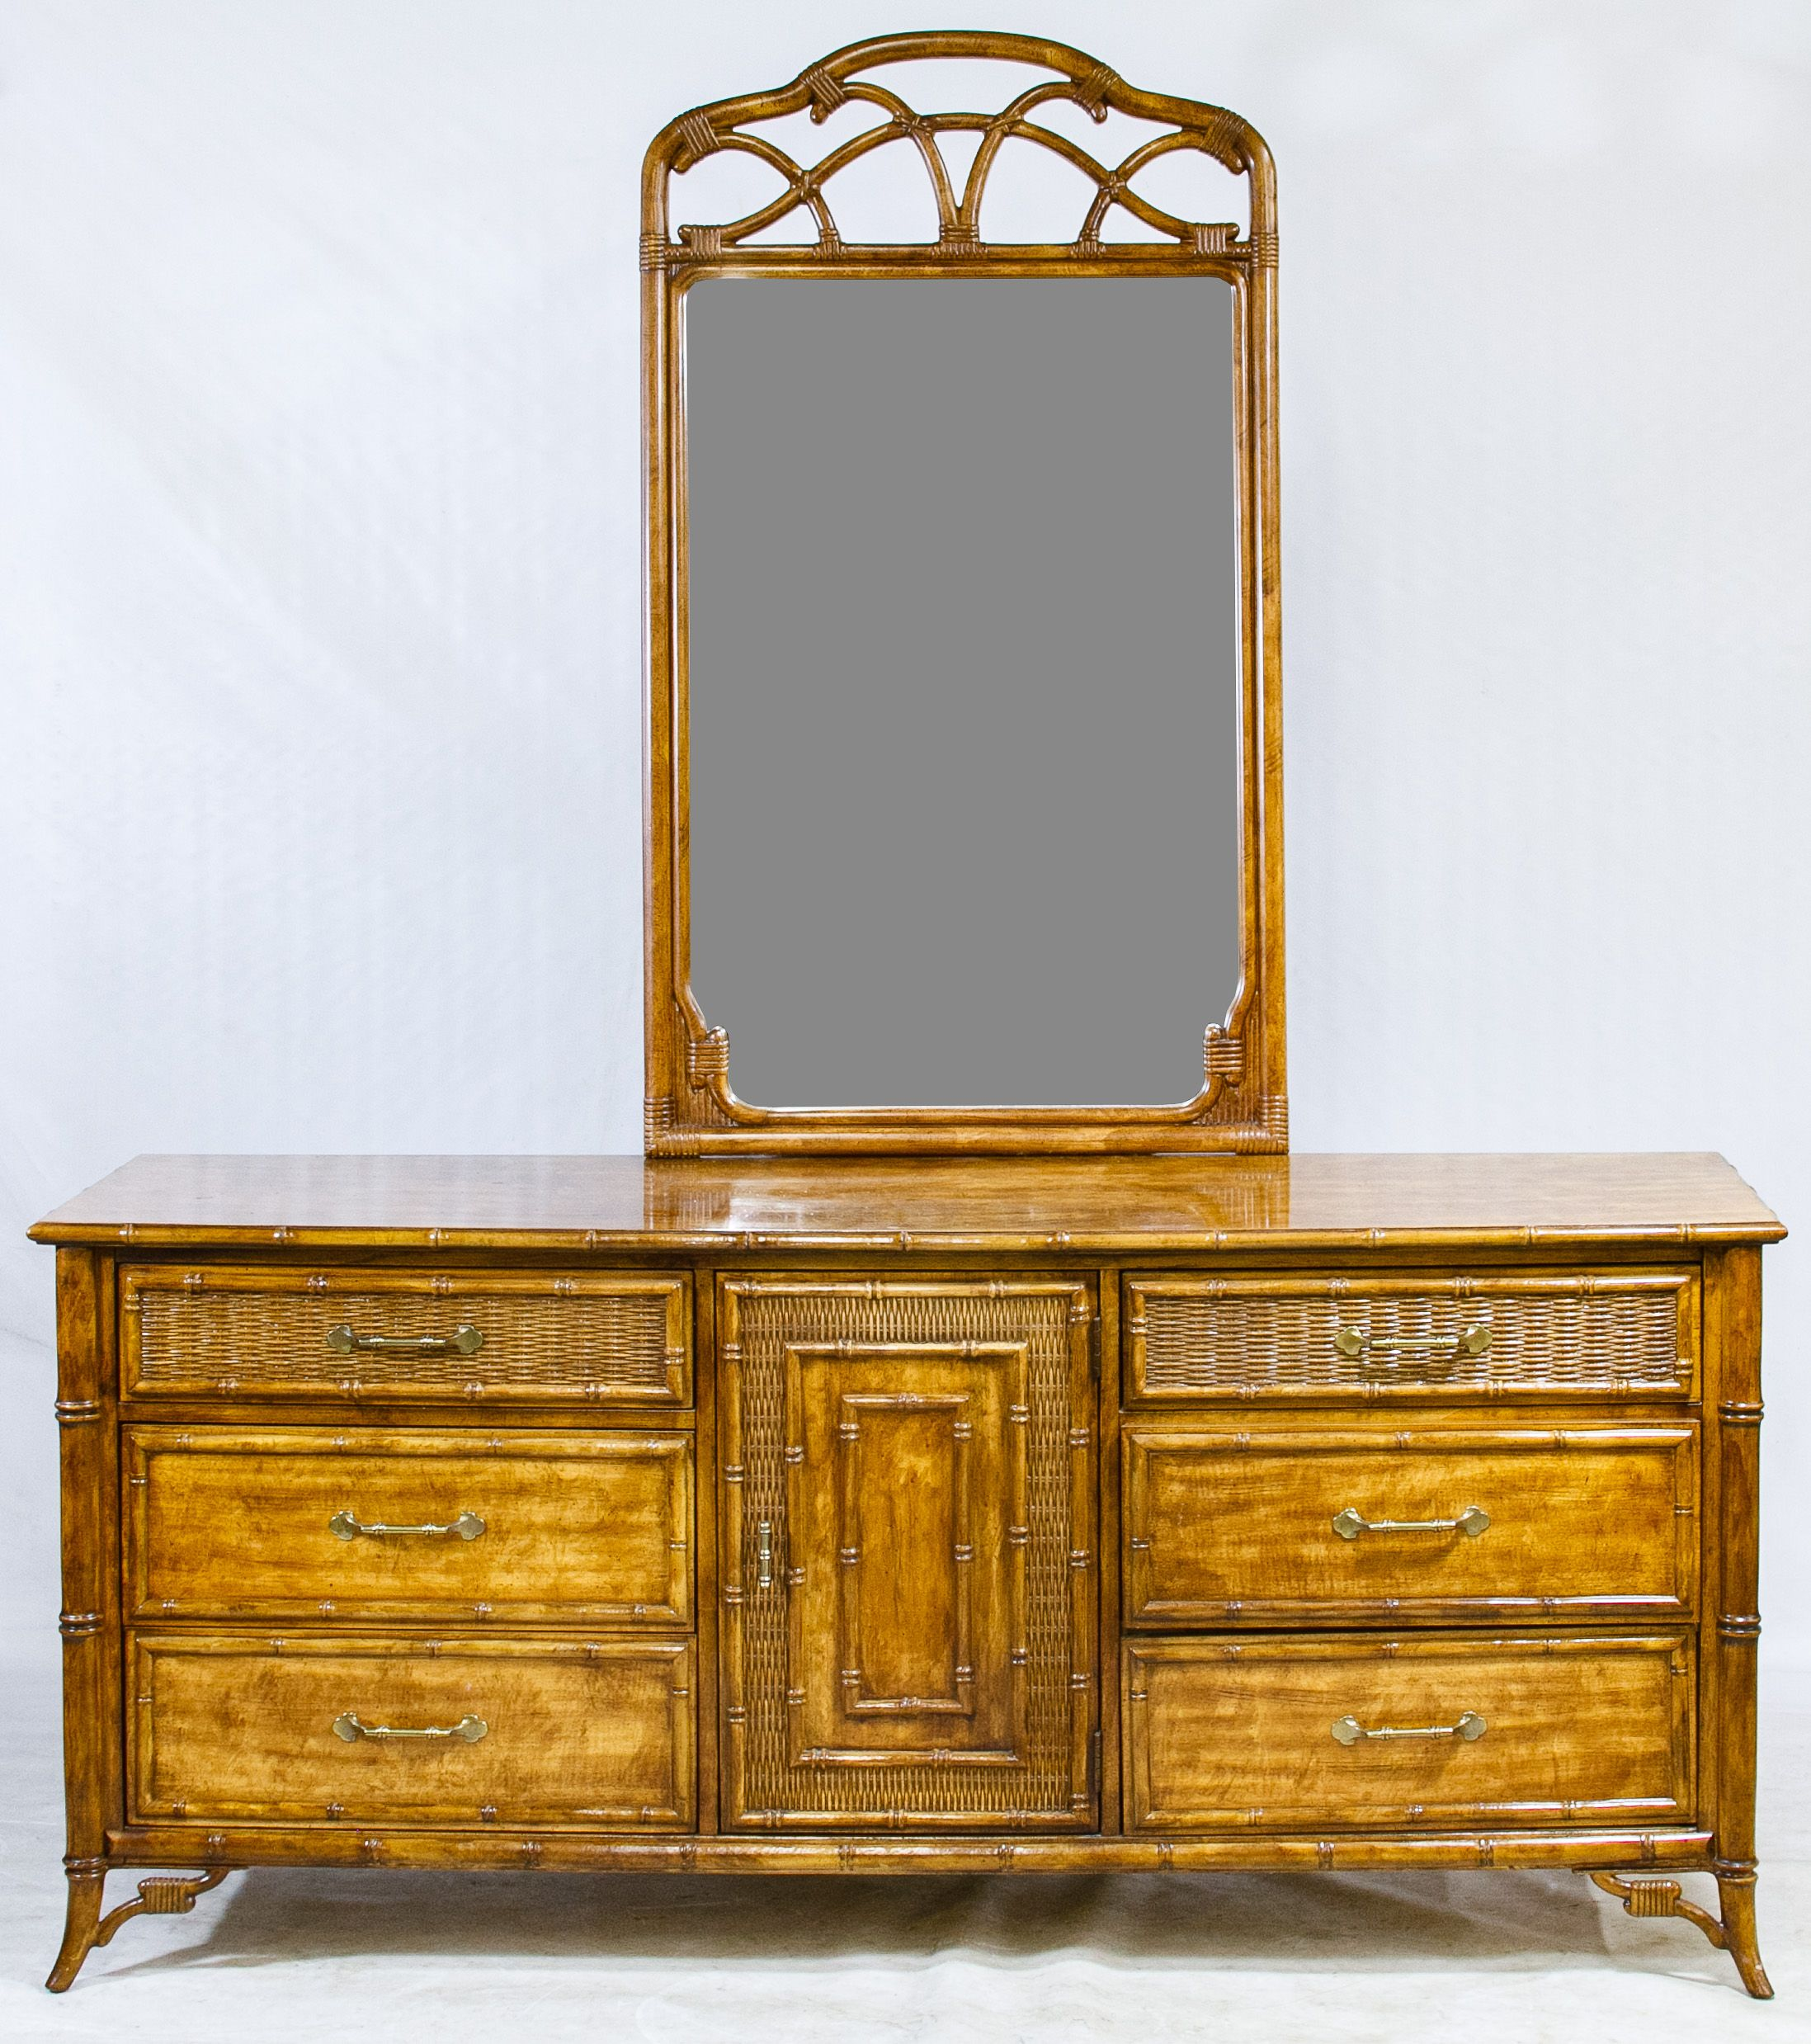 Lot 405 asian style dresser and wall mirror by stanley furniture lot 405 asian style dresser and wall mirror by stanley furniture having a bamboo amipublicfo Images